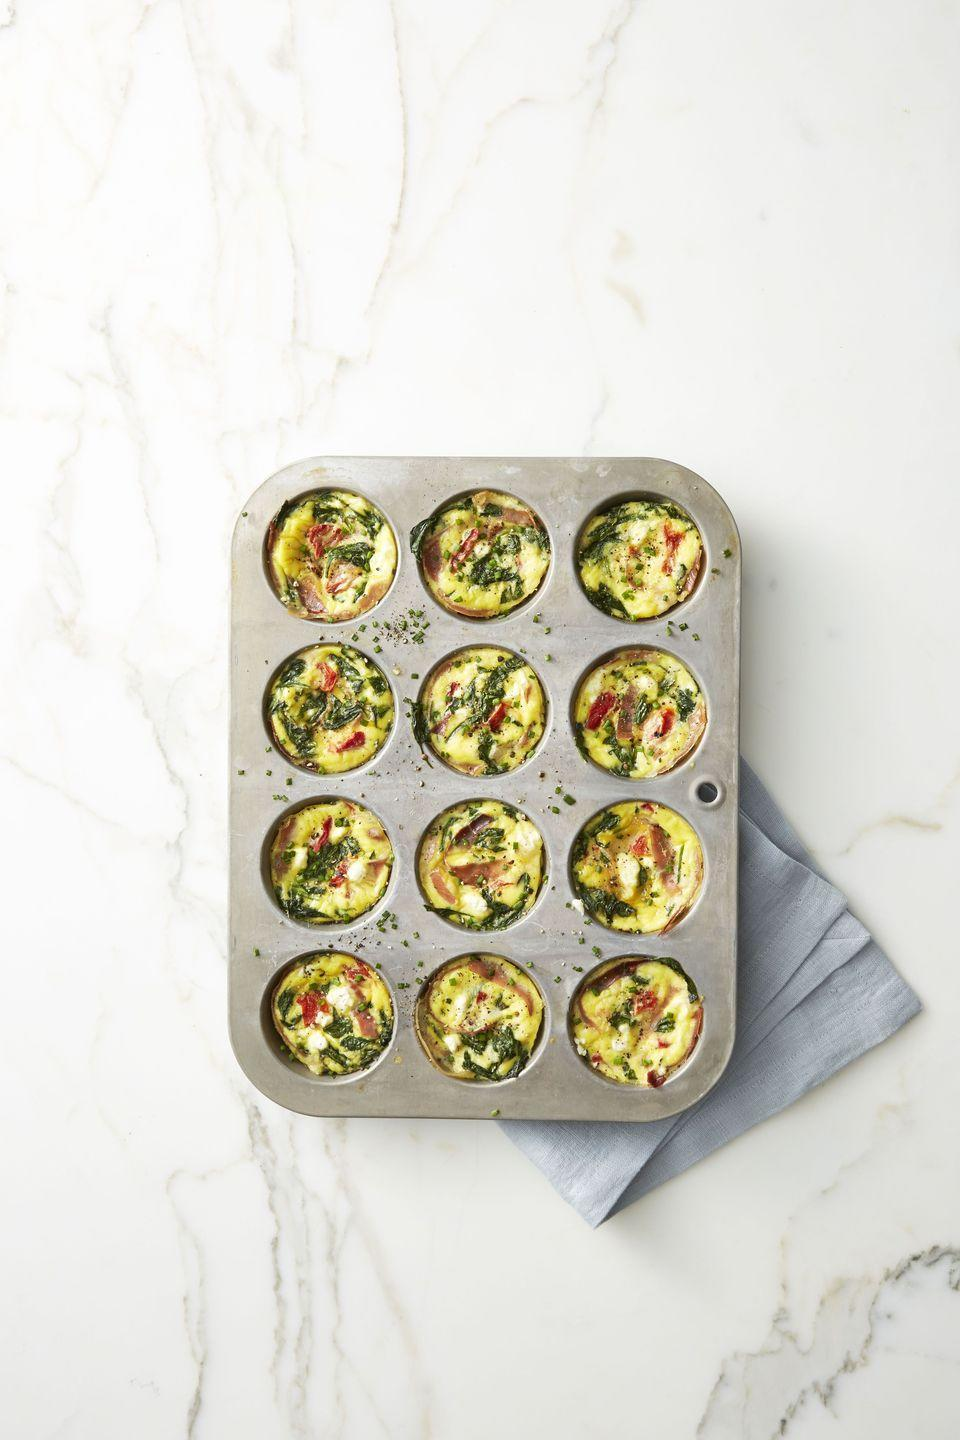 """<p>Bake up a batch of these healthy """"muffins"""" to serve to all your brunch guests.</p><p><a href=""""https://www.goodhousekeeping.com/food-recipes/easy/a42206/spinach-and-prosciutto-frittata-muffins-recipe/"""" rel=""""nofollow noopener"""" target=""""_blank"""" data-ylk=""""slk:Get the recipe for Spinach and Prosciutto Frittata Muffins »"""" class=""""link rapid-noclick-resp""""><em>Get the recipe for Spinach and Prosciutto Frittata Muffins »</em></a></p>"""